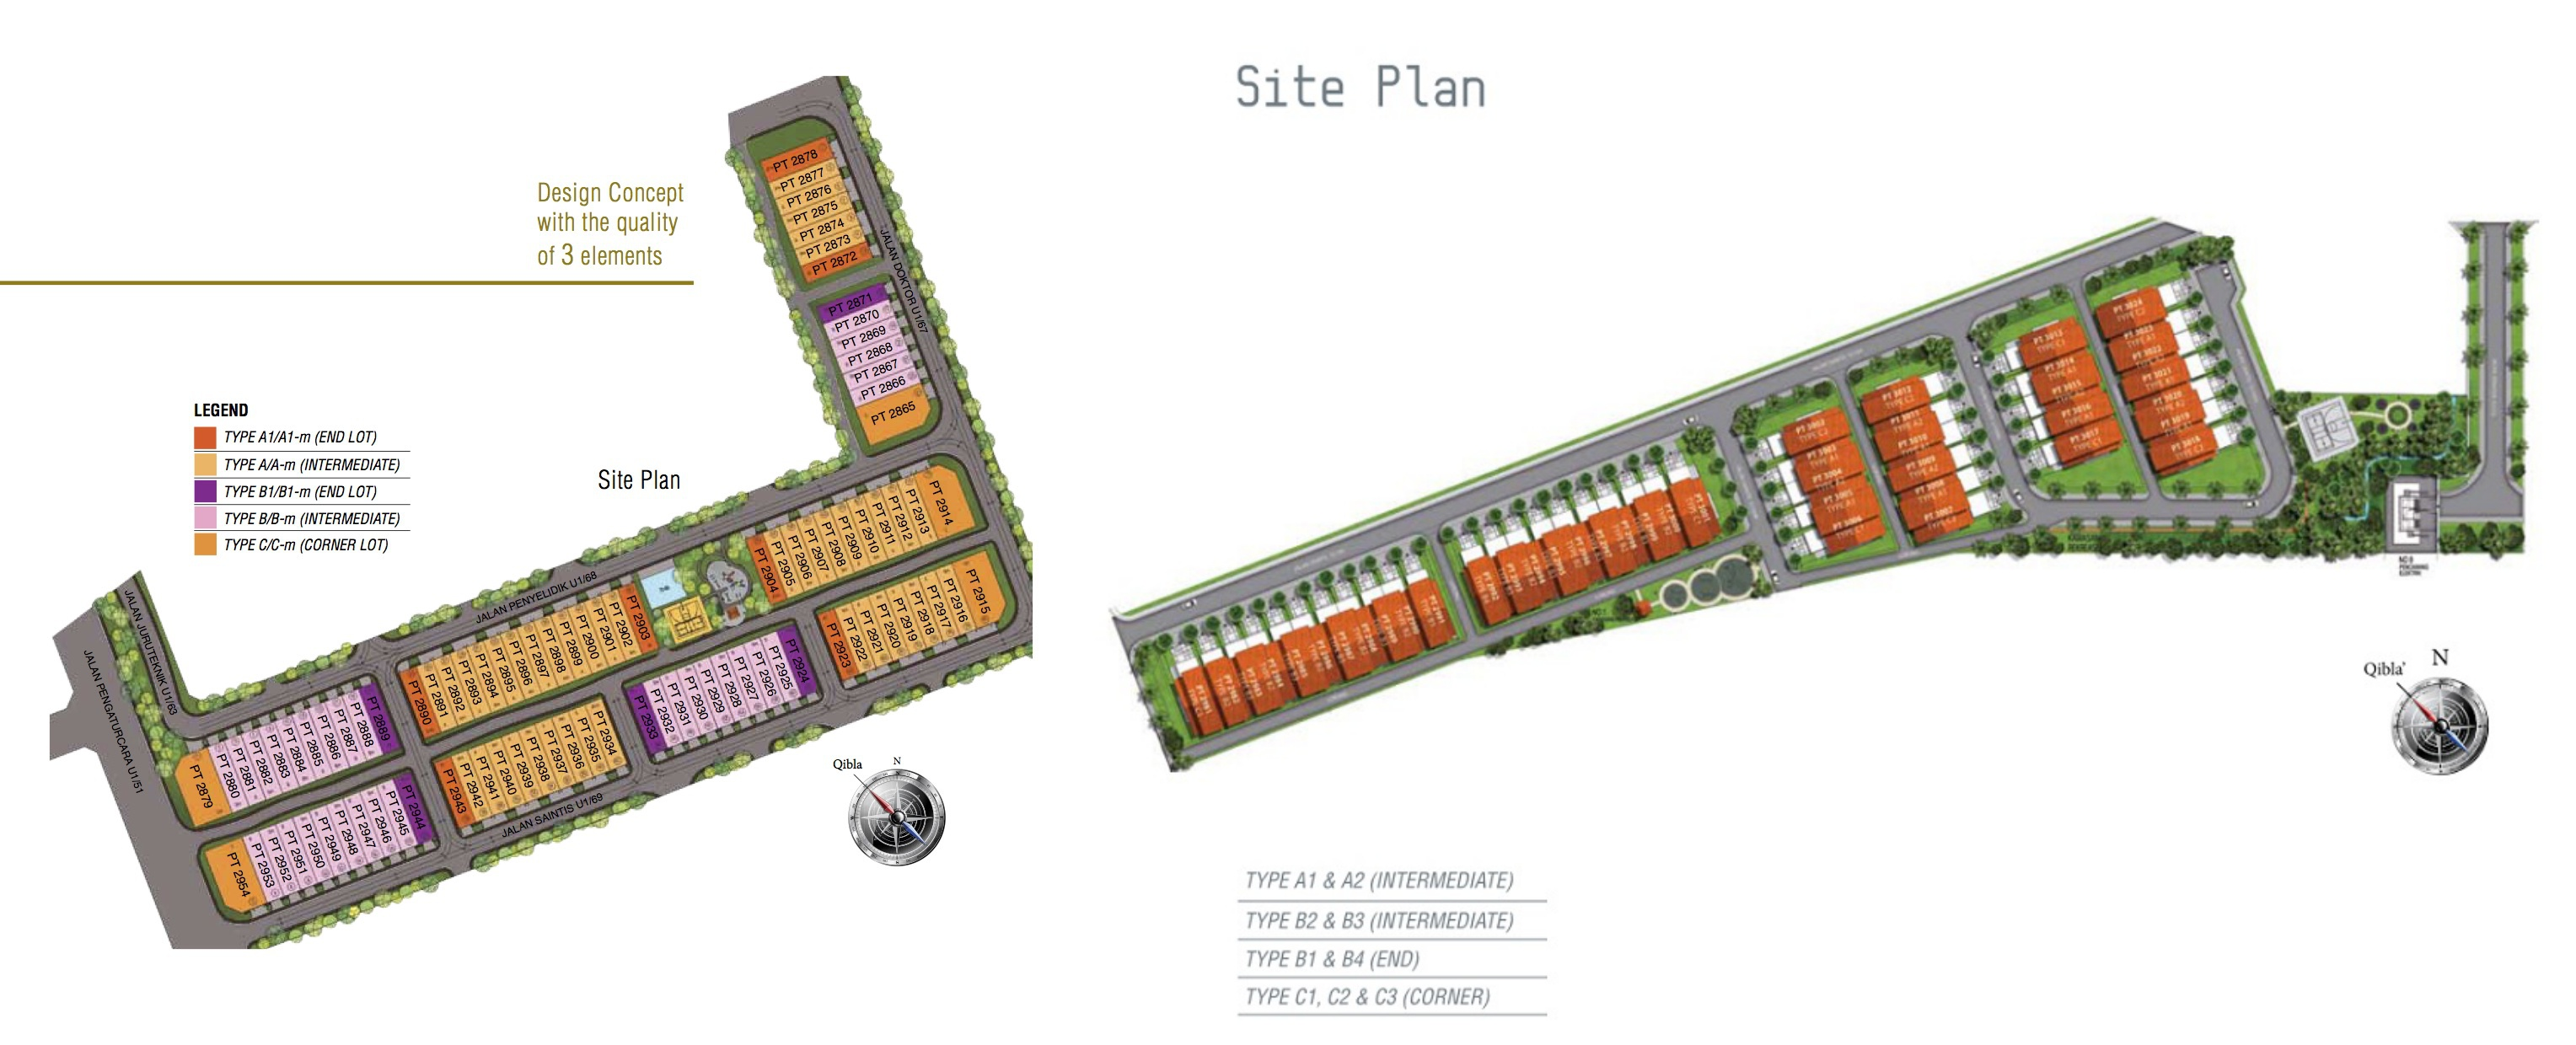 Site Plan of Temasya Sinar